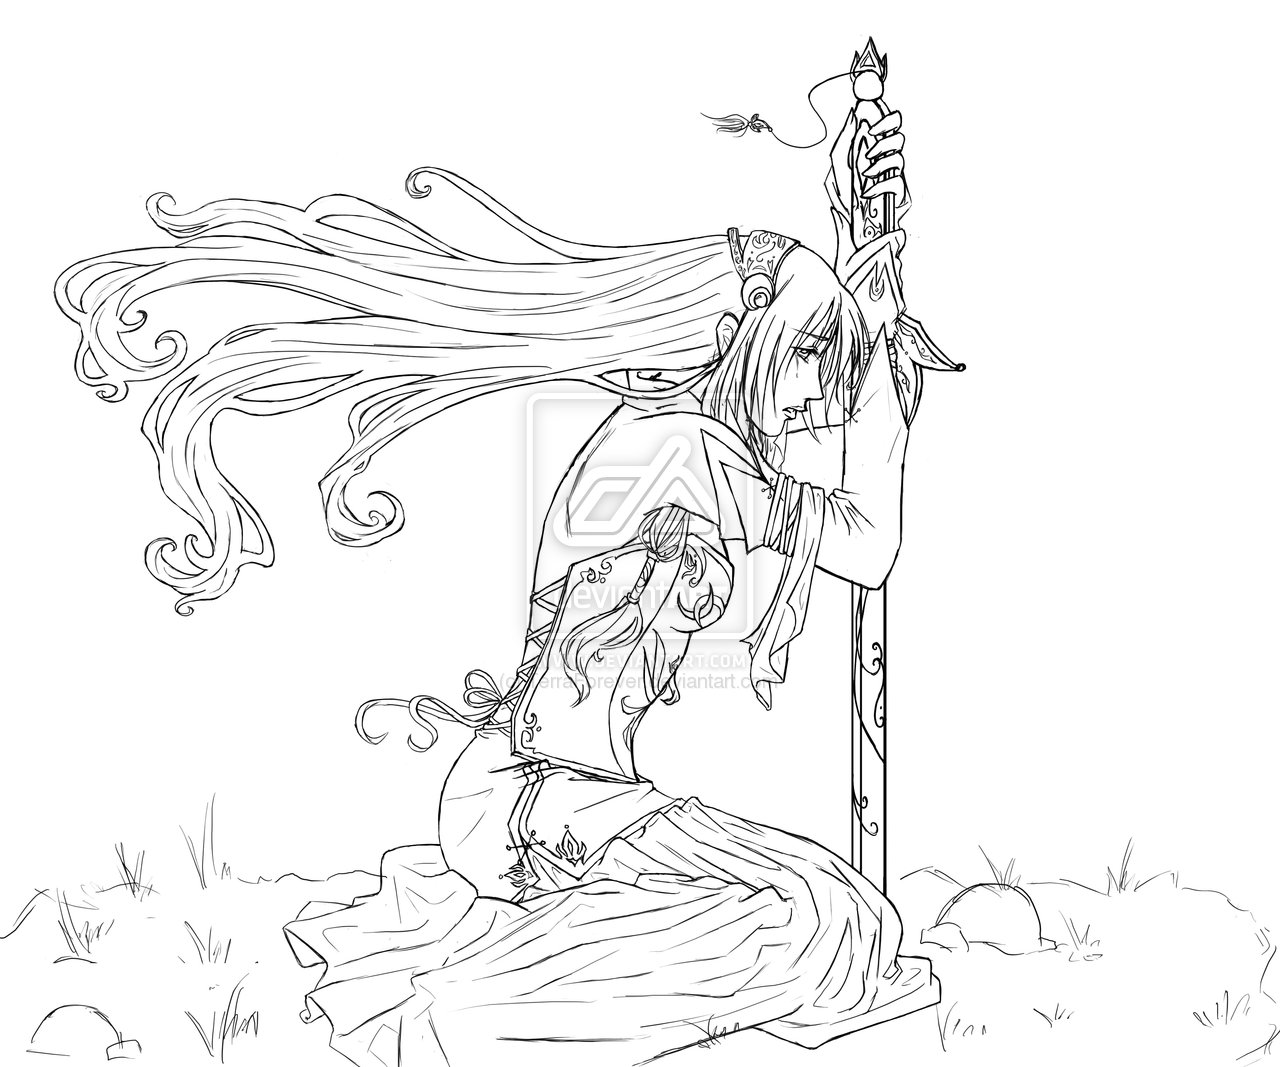 Drawn warrior line art On CSS CSS Lineart Elf